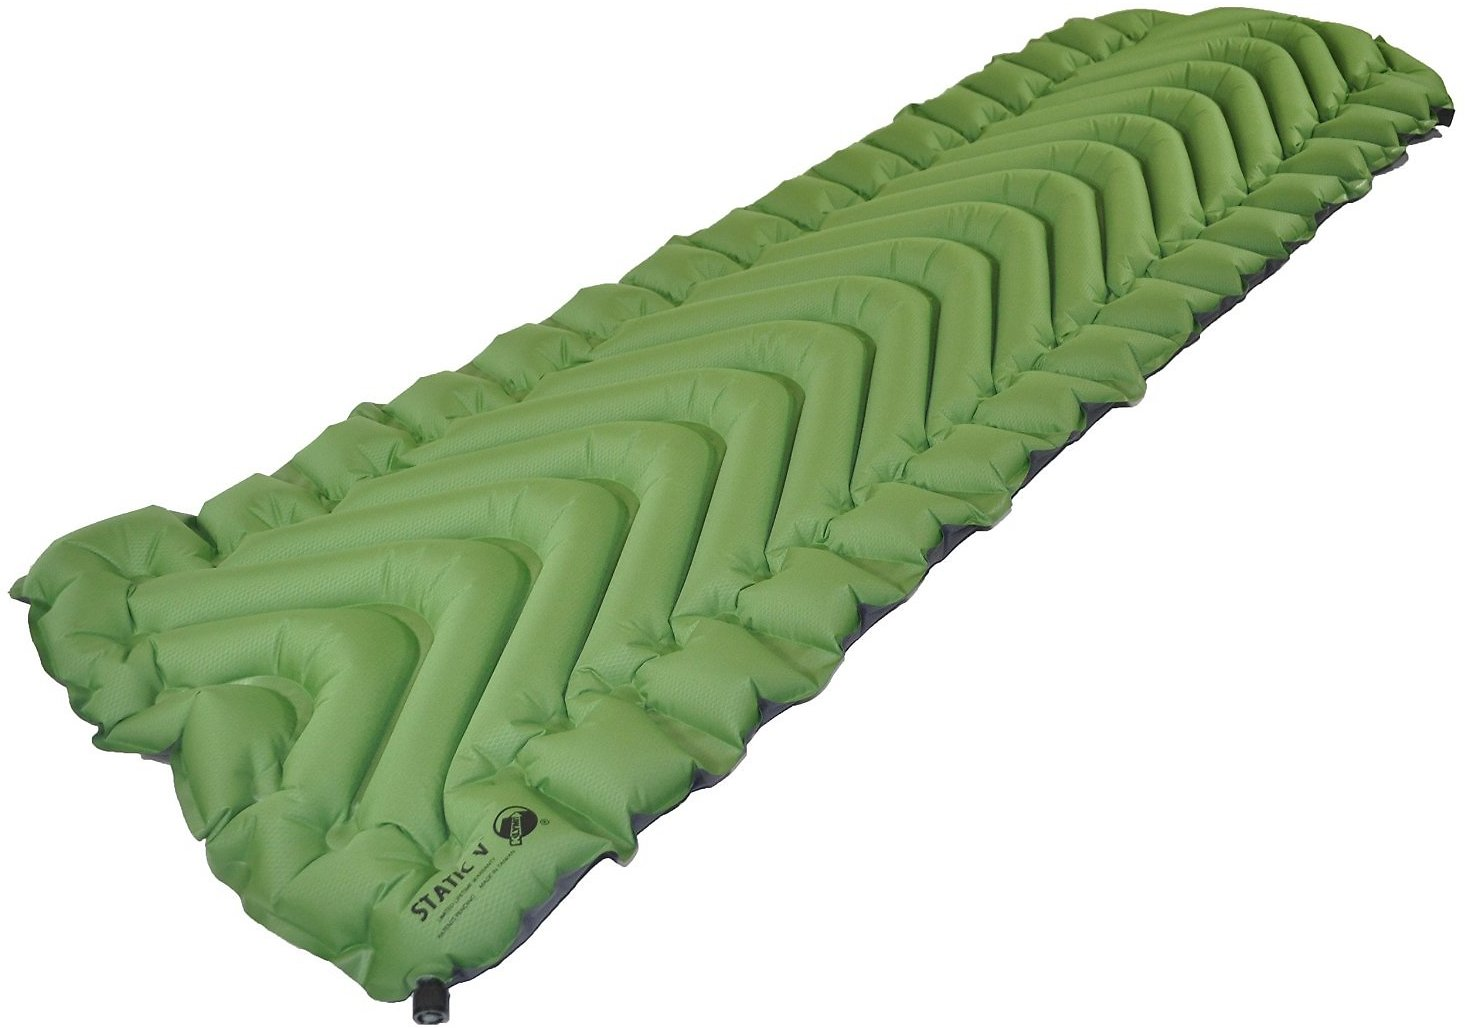 Klymit Static V Lightweight Sleeping Pad, Green/Char Black : Camping Air Mattresses : Sports & Outdoors